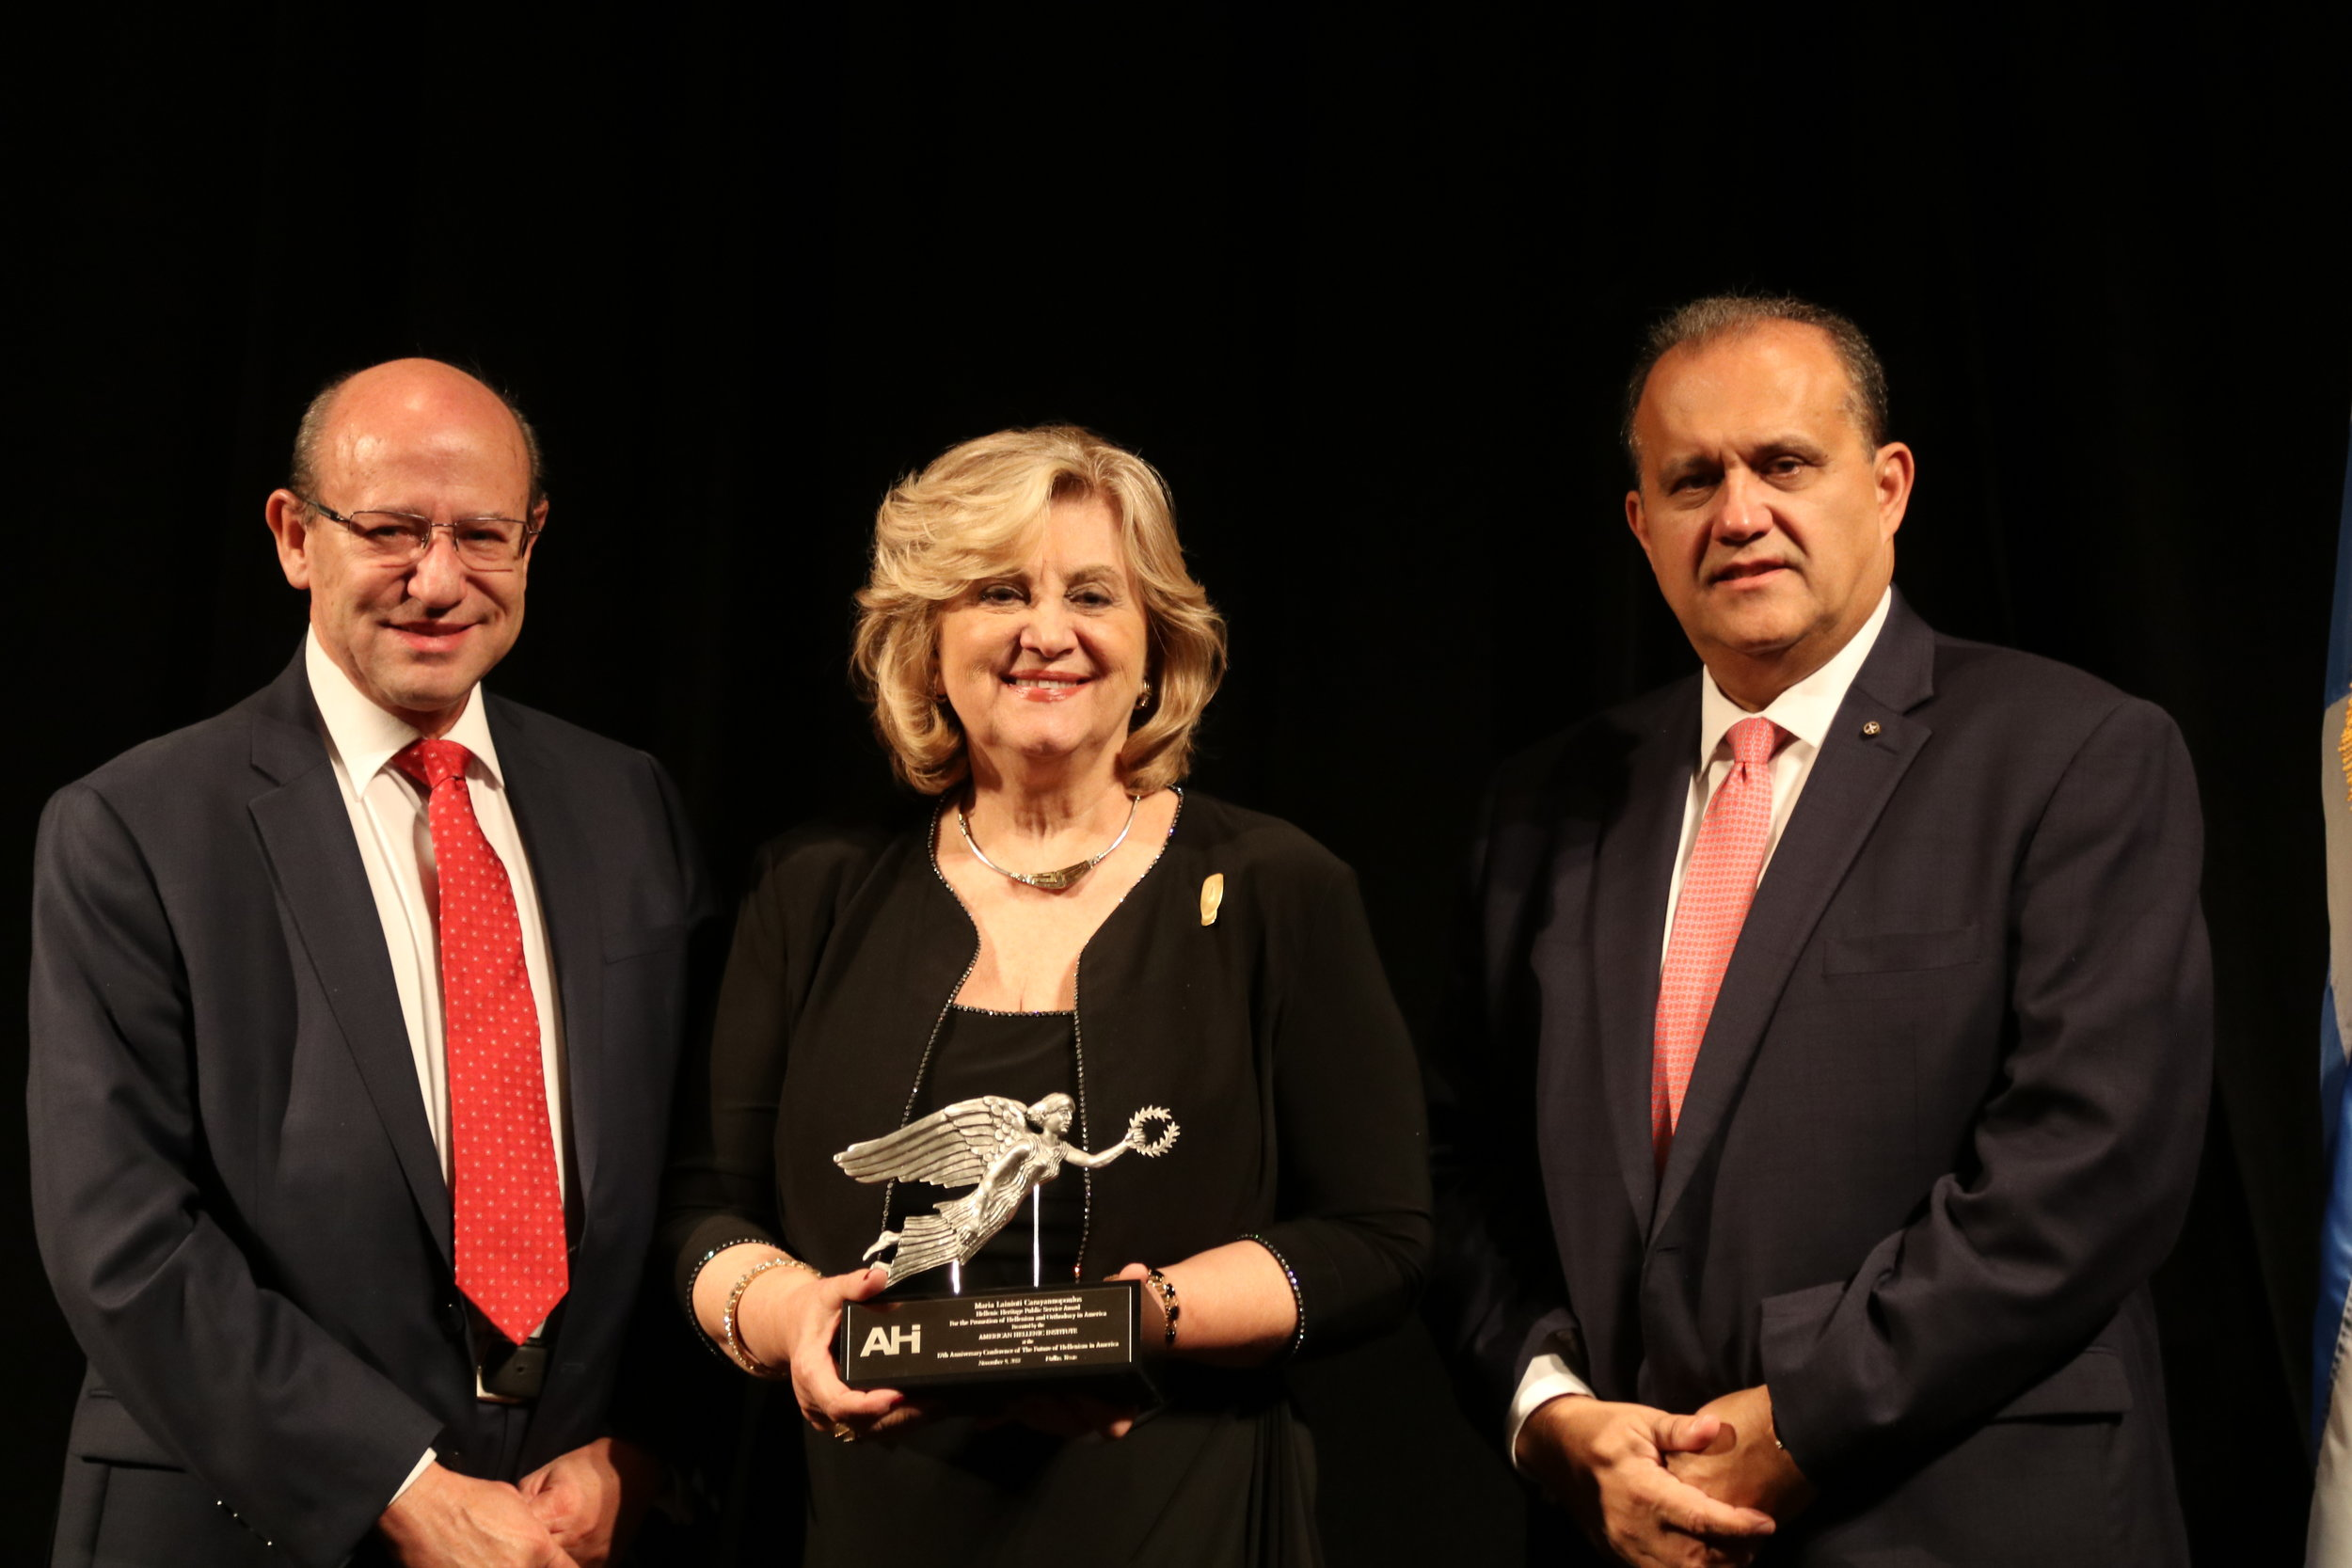 Maria Lainioti Carayannopoulos receives the AHI Hellenic Heritage Award for the Promotion of Hellenism and Orthodoxy in America.